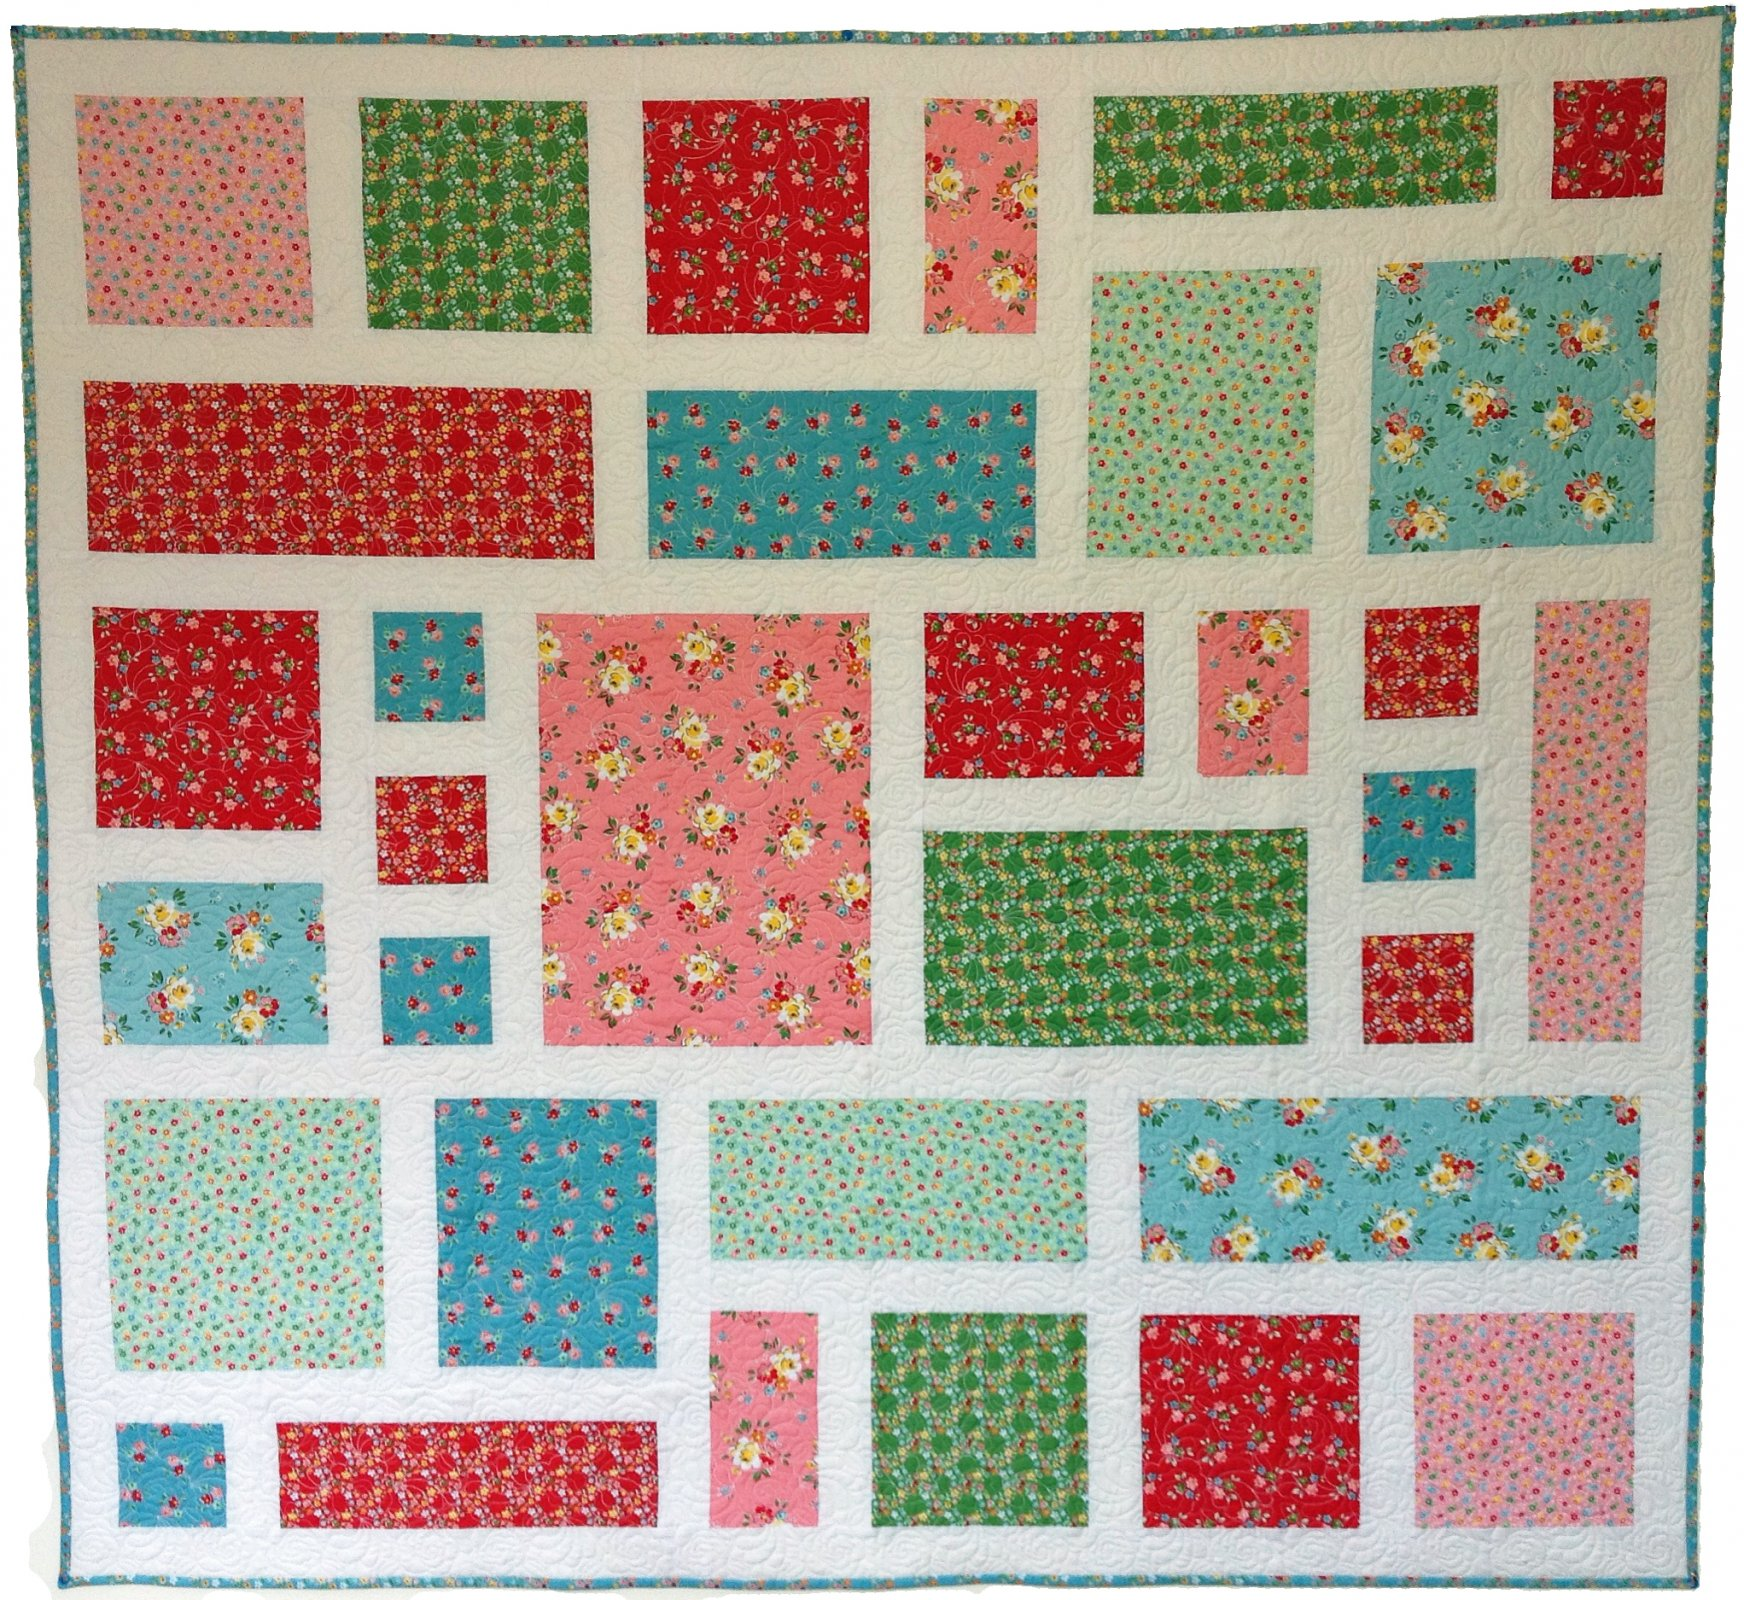 So Sweet quilt by Clares Place 1